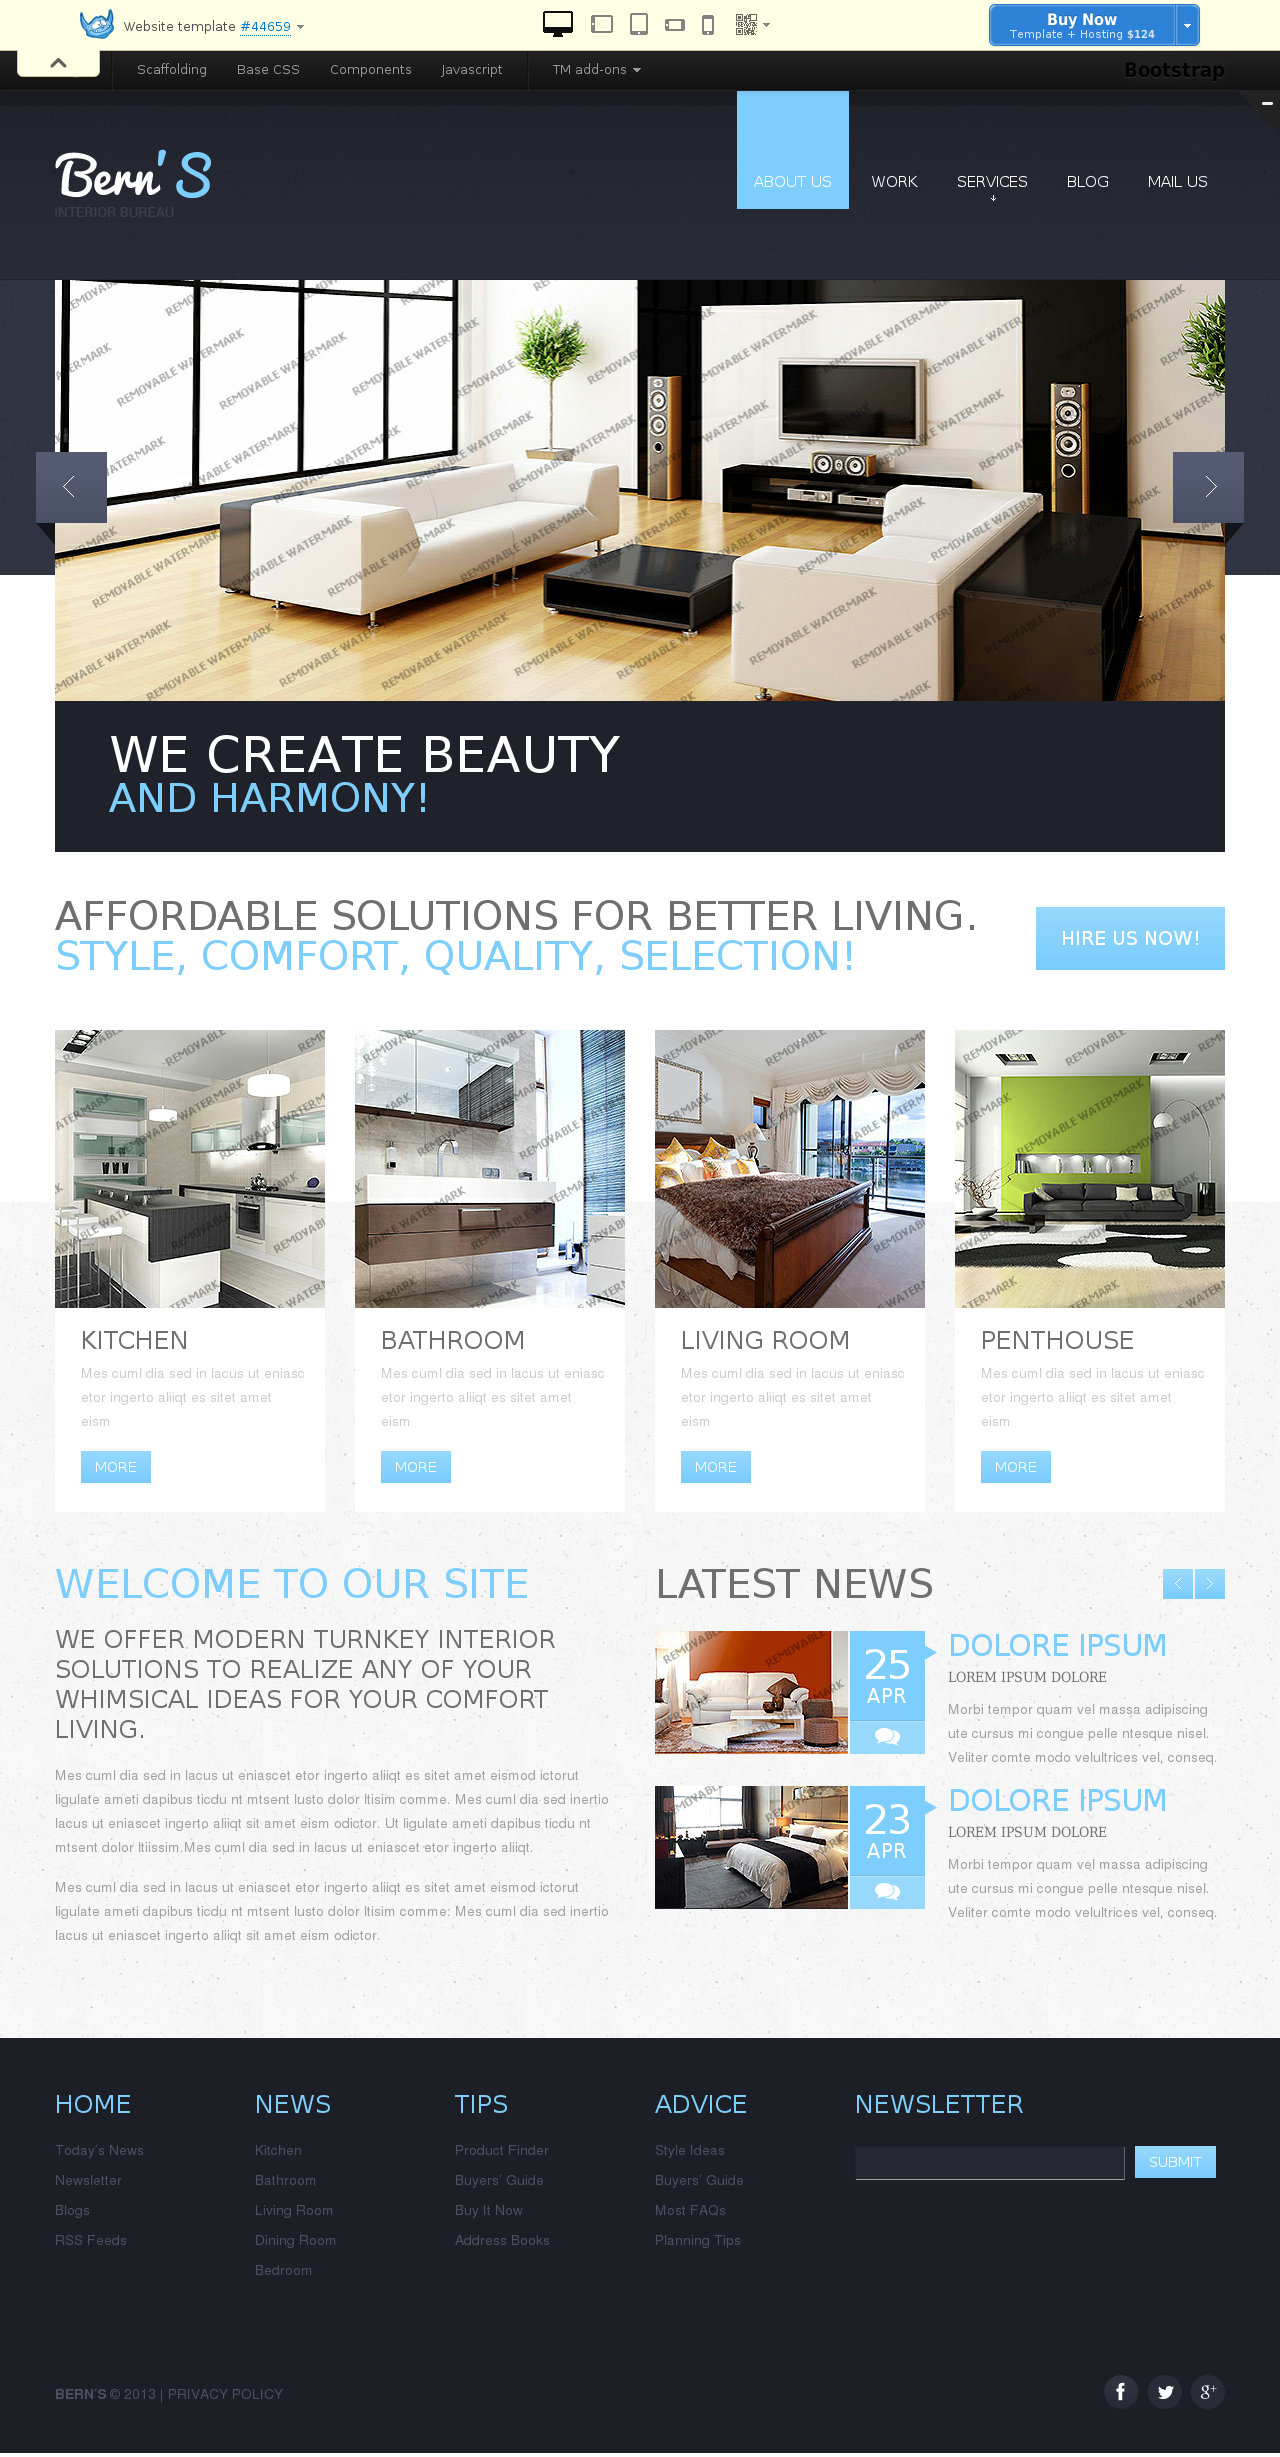 website template 44659